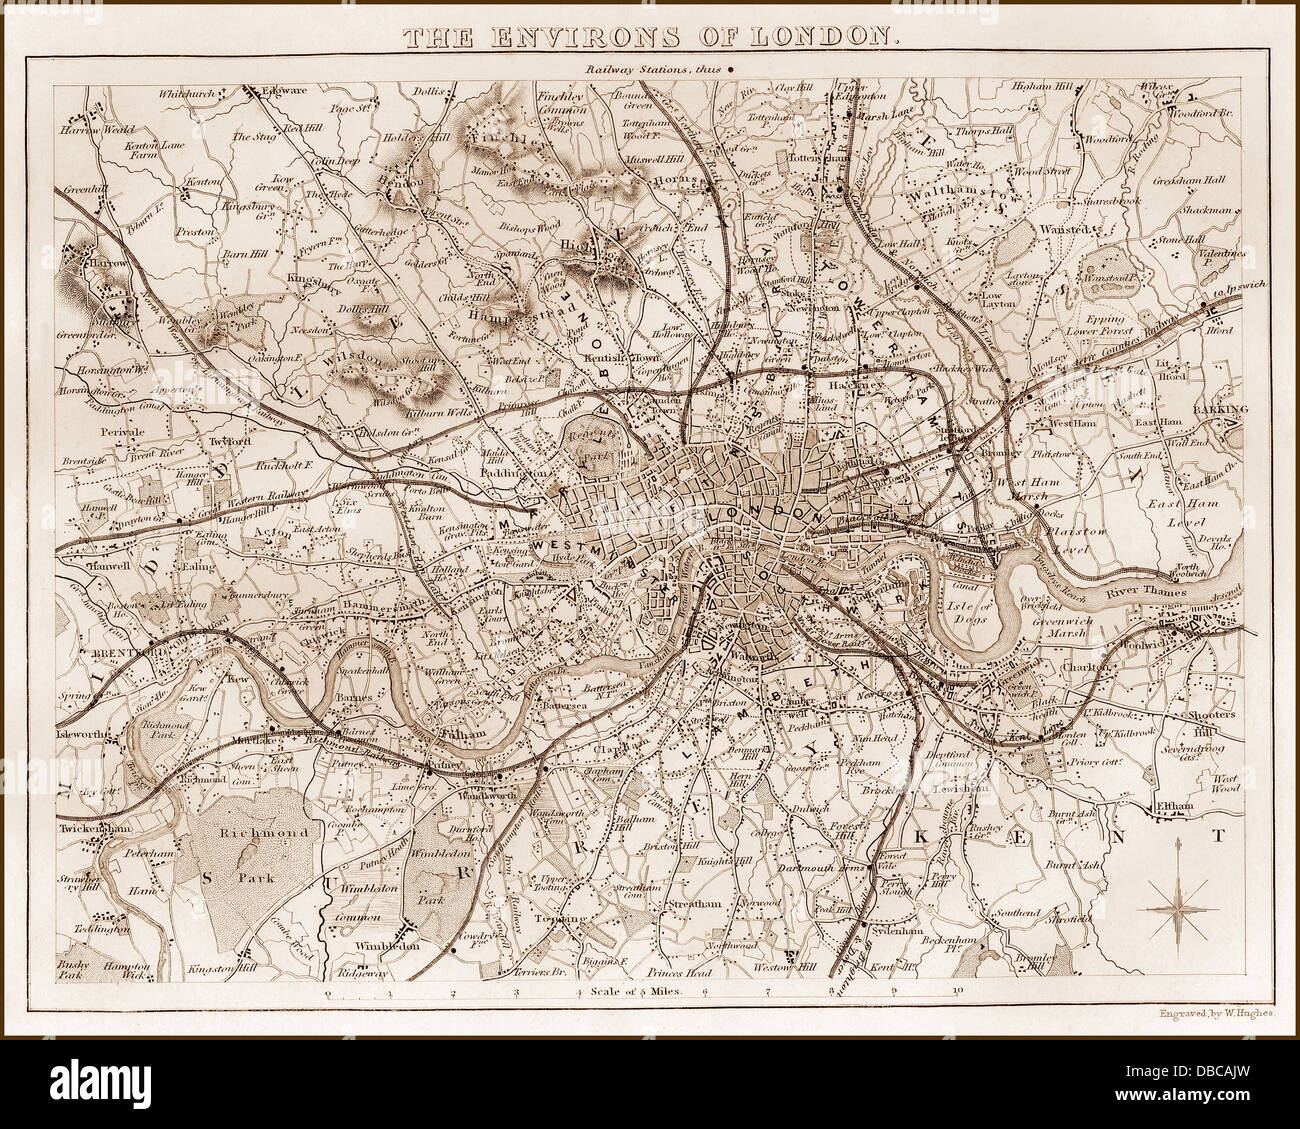 1840s Victorian Map of Greater London - Stock Image